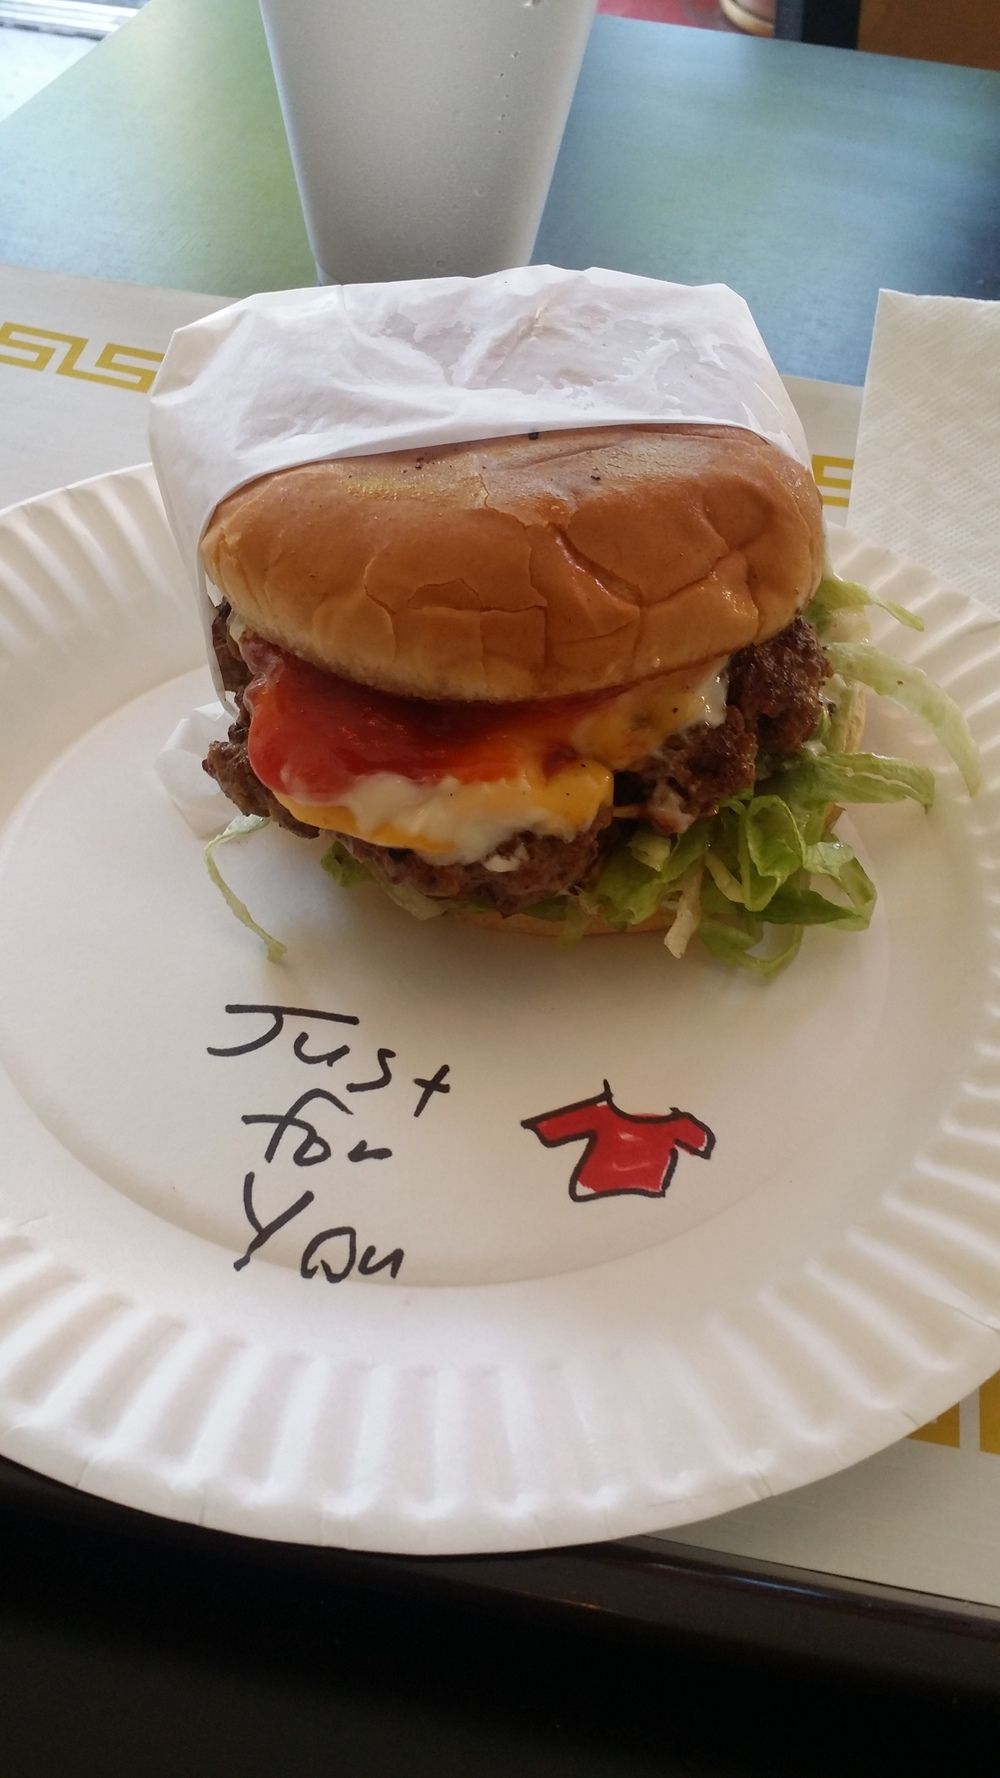 20160416_172230 customer Experience  marketing cx shift user experience business startup entrepreneur Irvs Burger.jpg